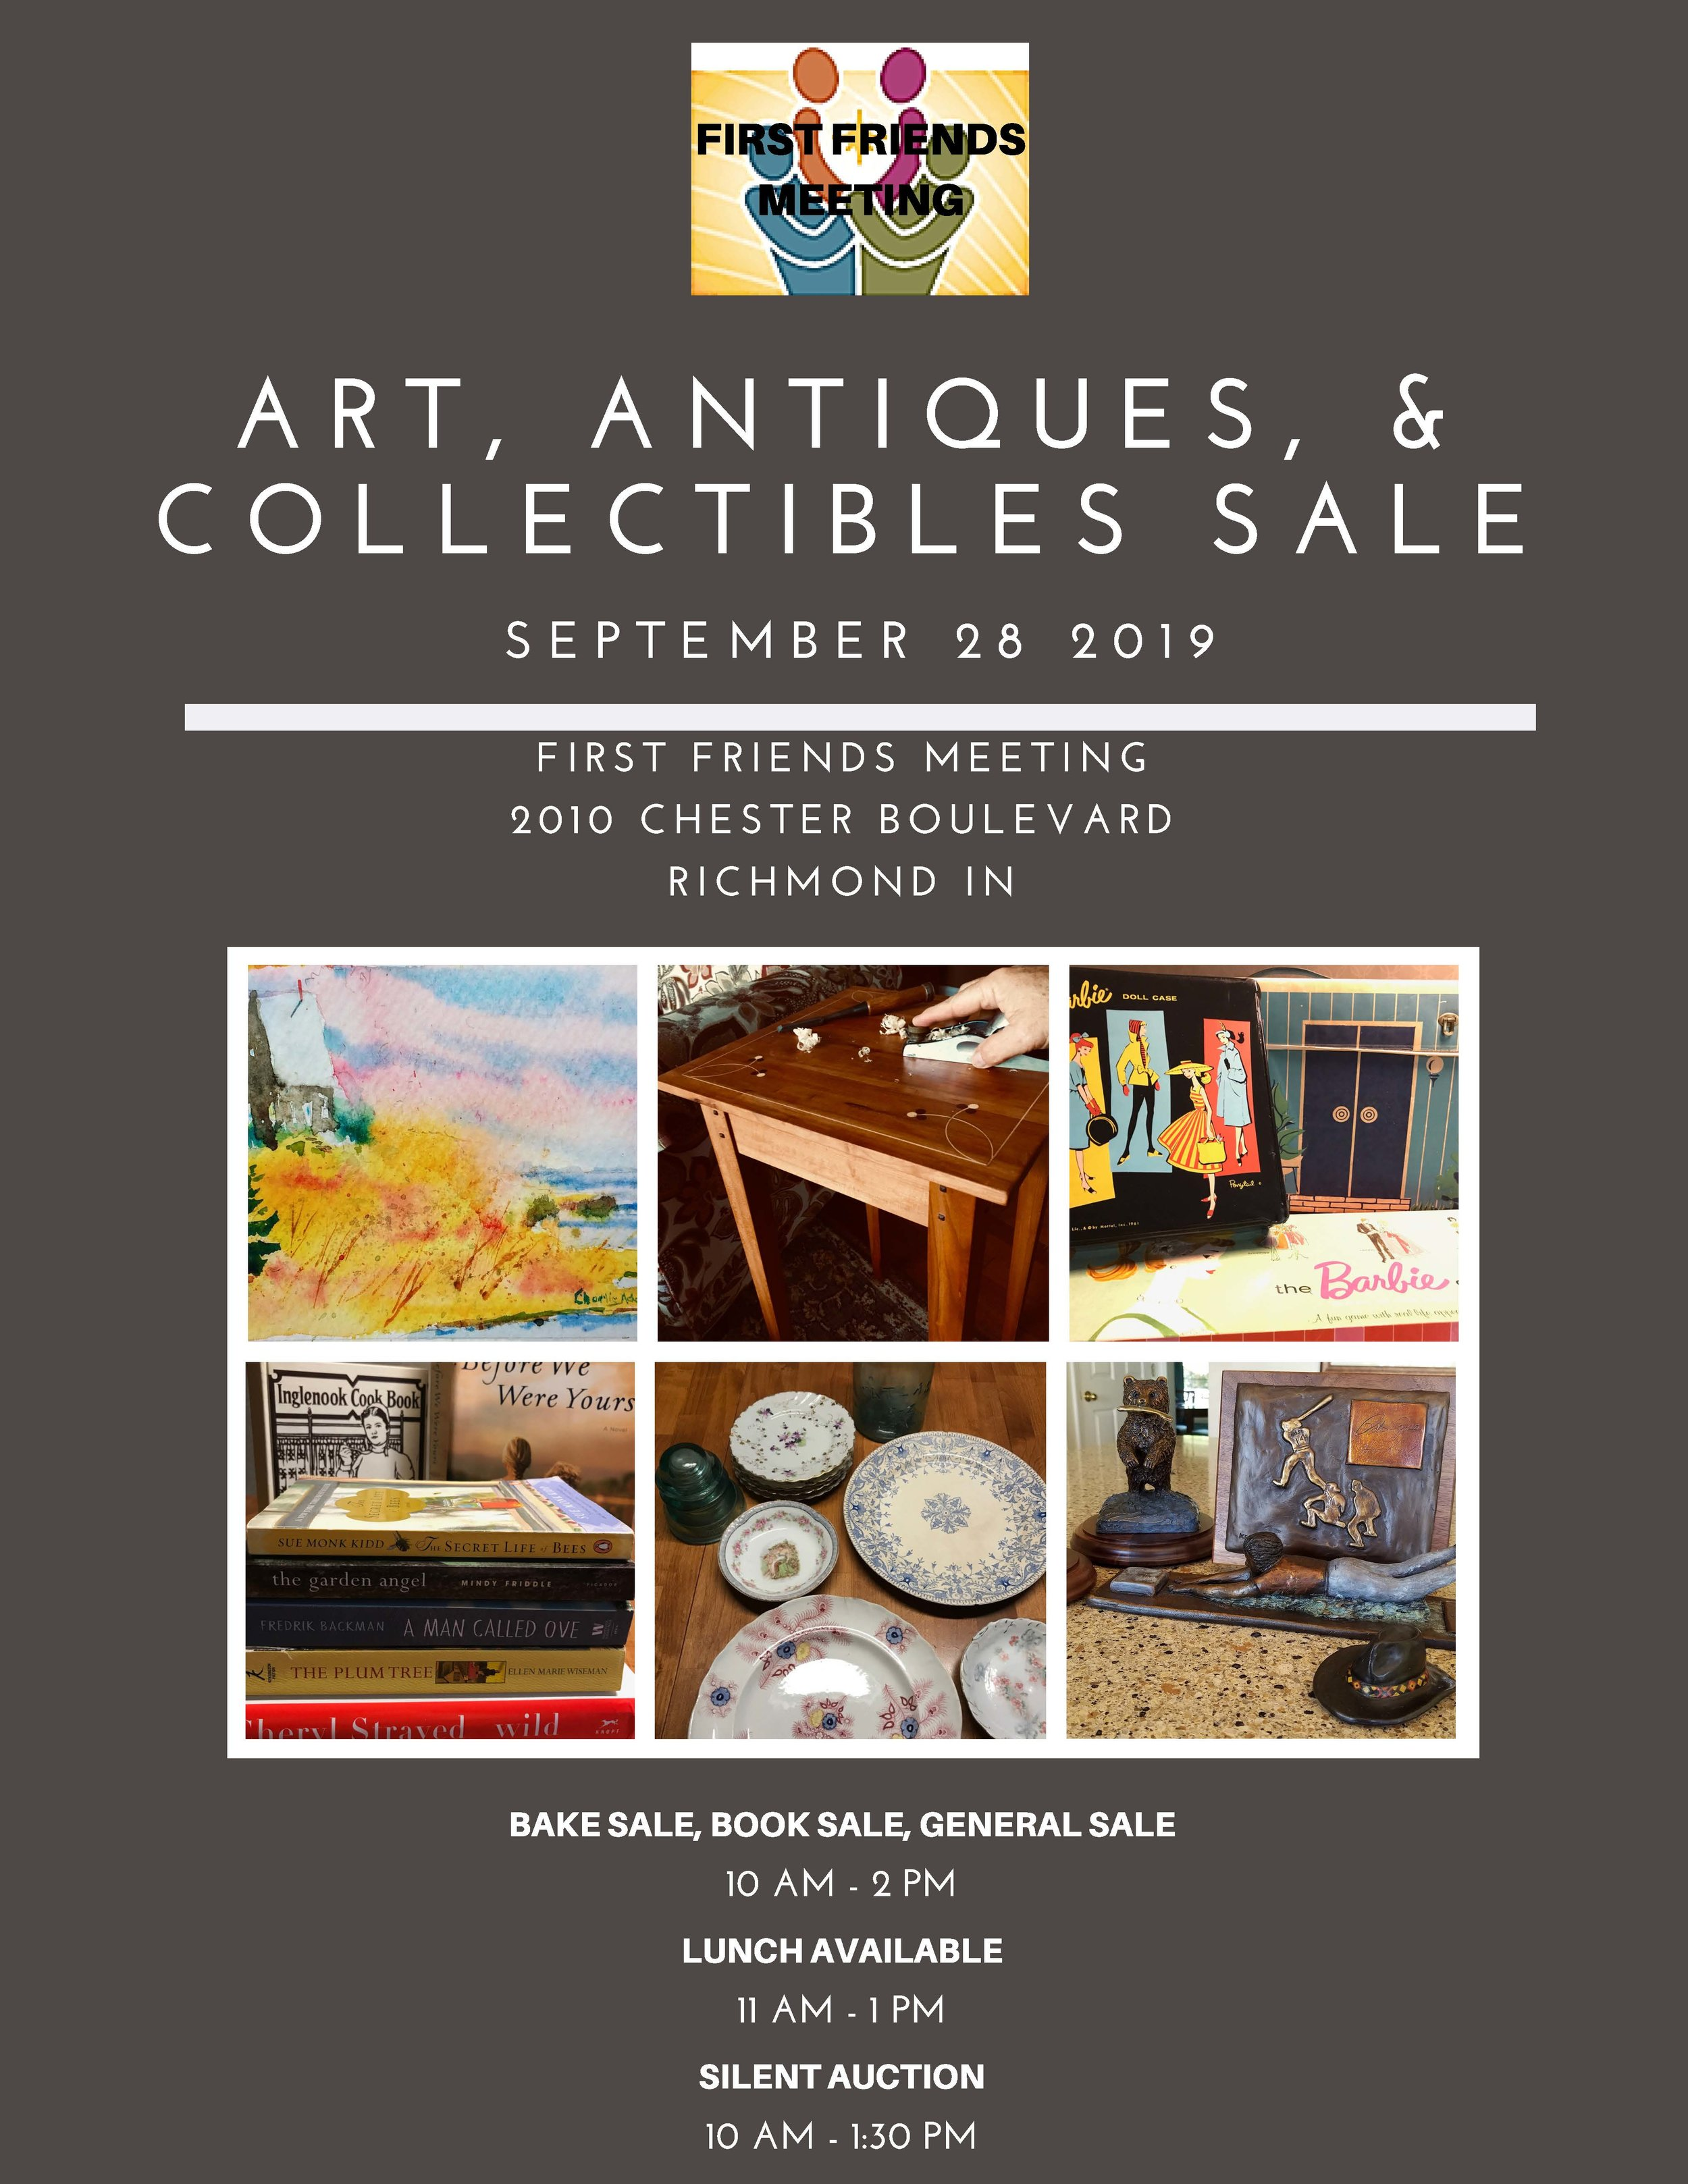 First Friends Art, Antiques, and Collectables Sale Sept 28.jpg